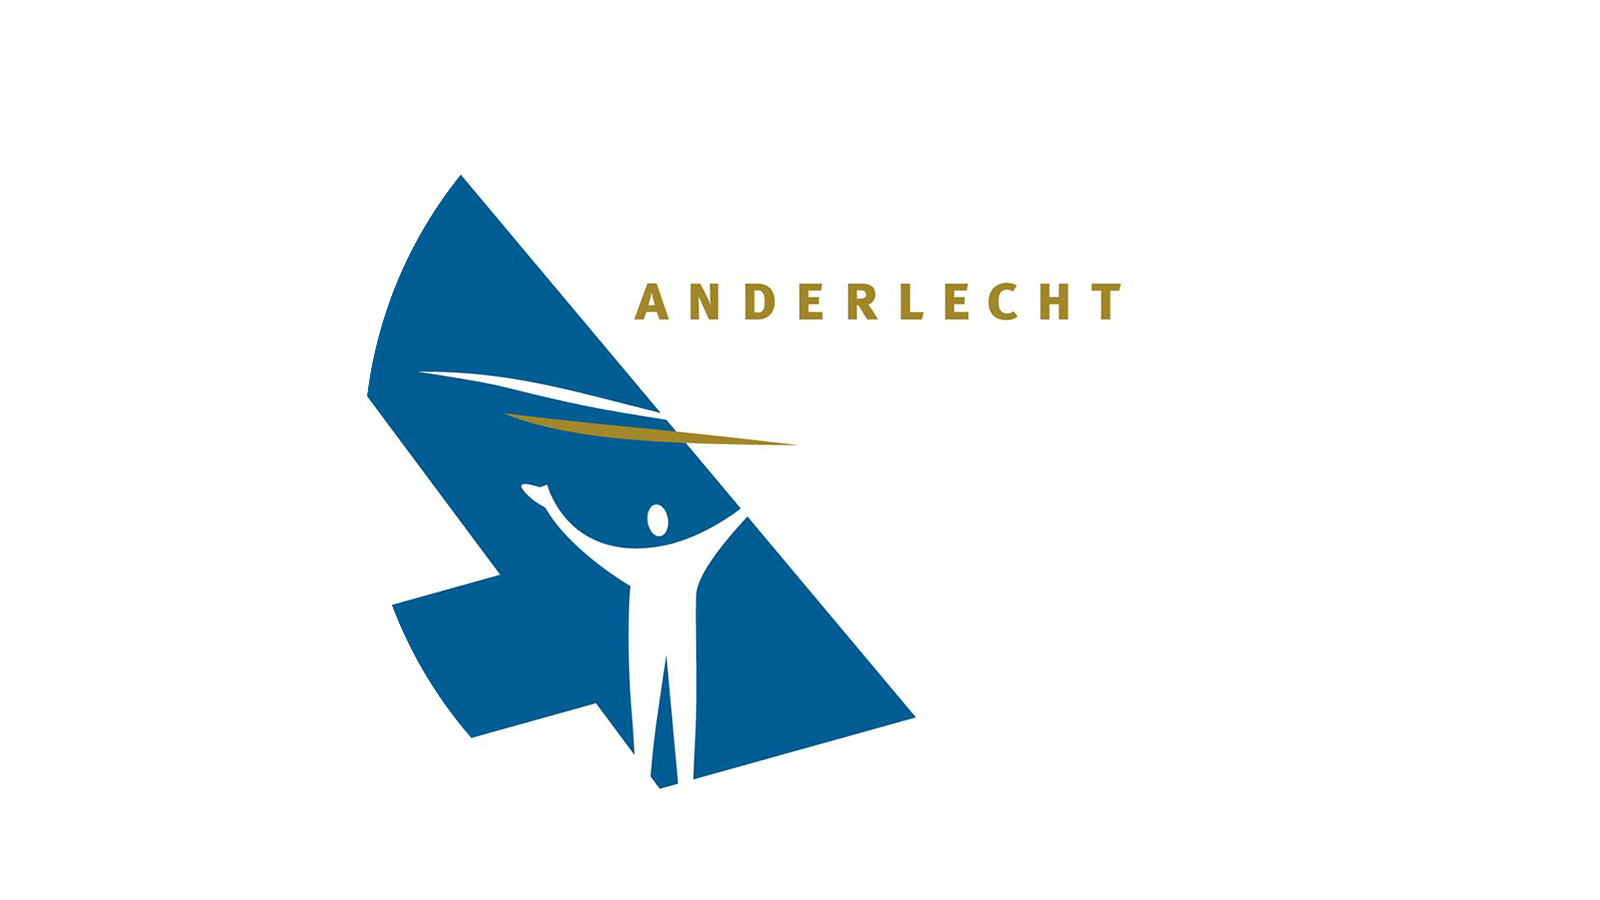 Municipality of Anderlecht